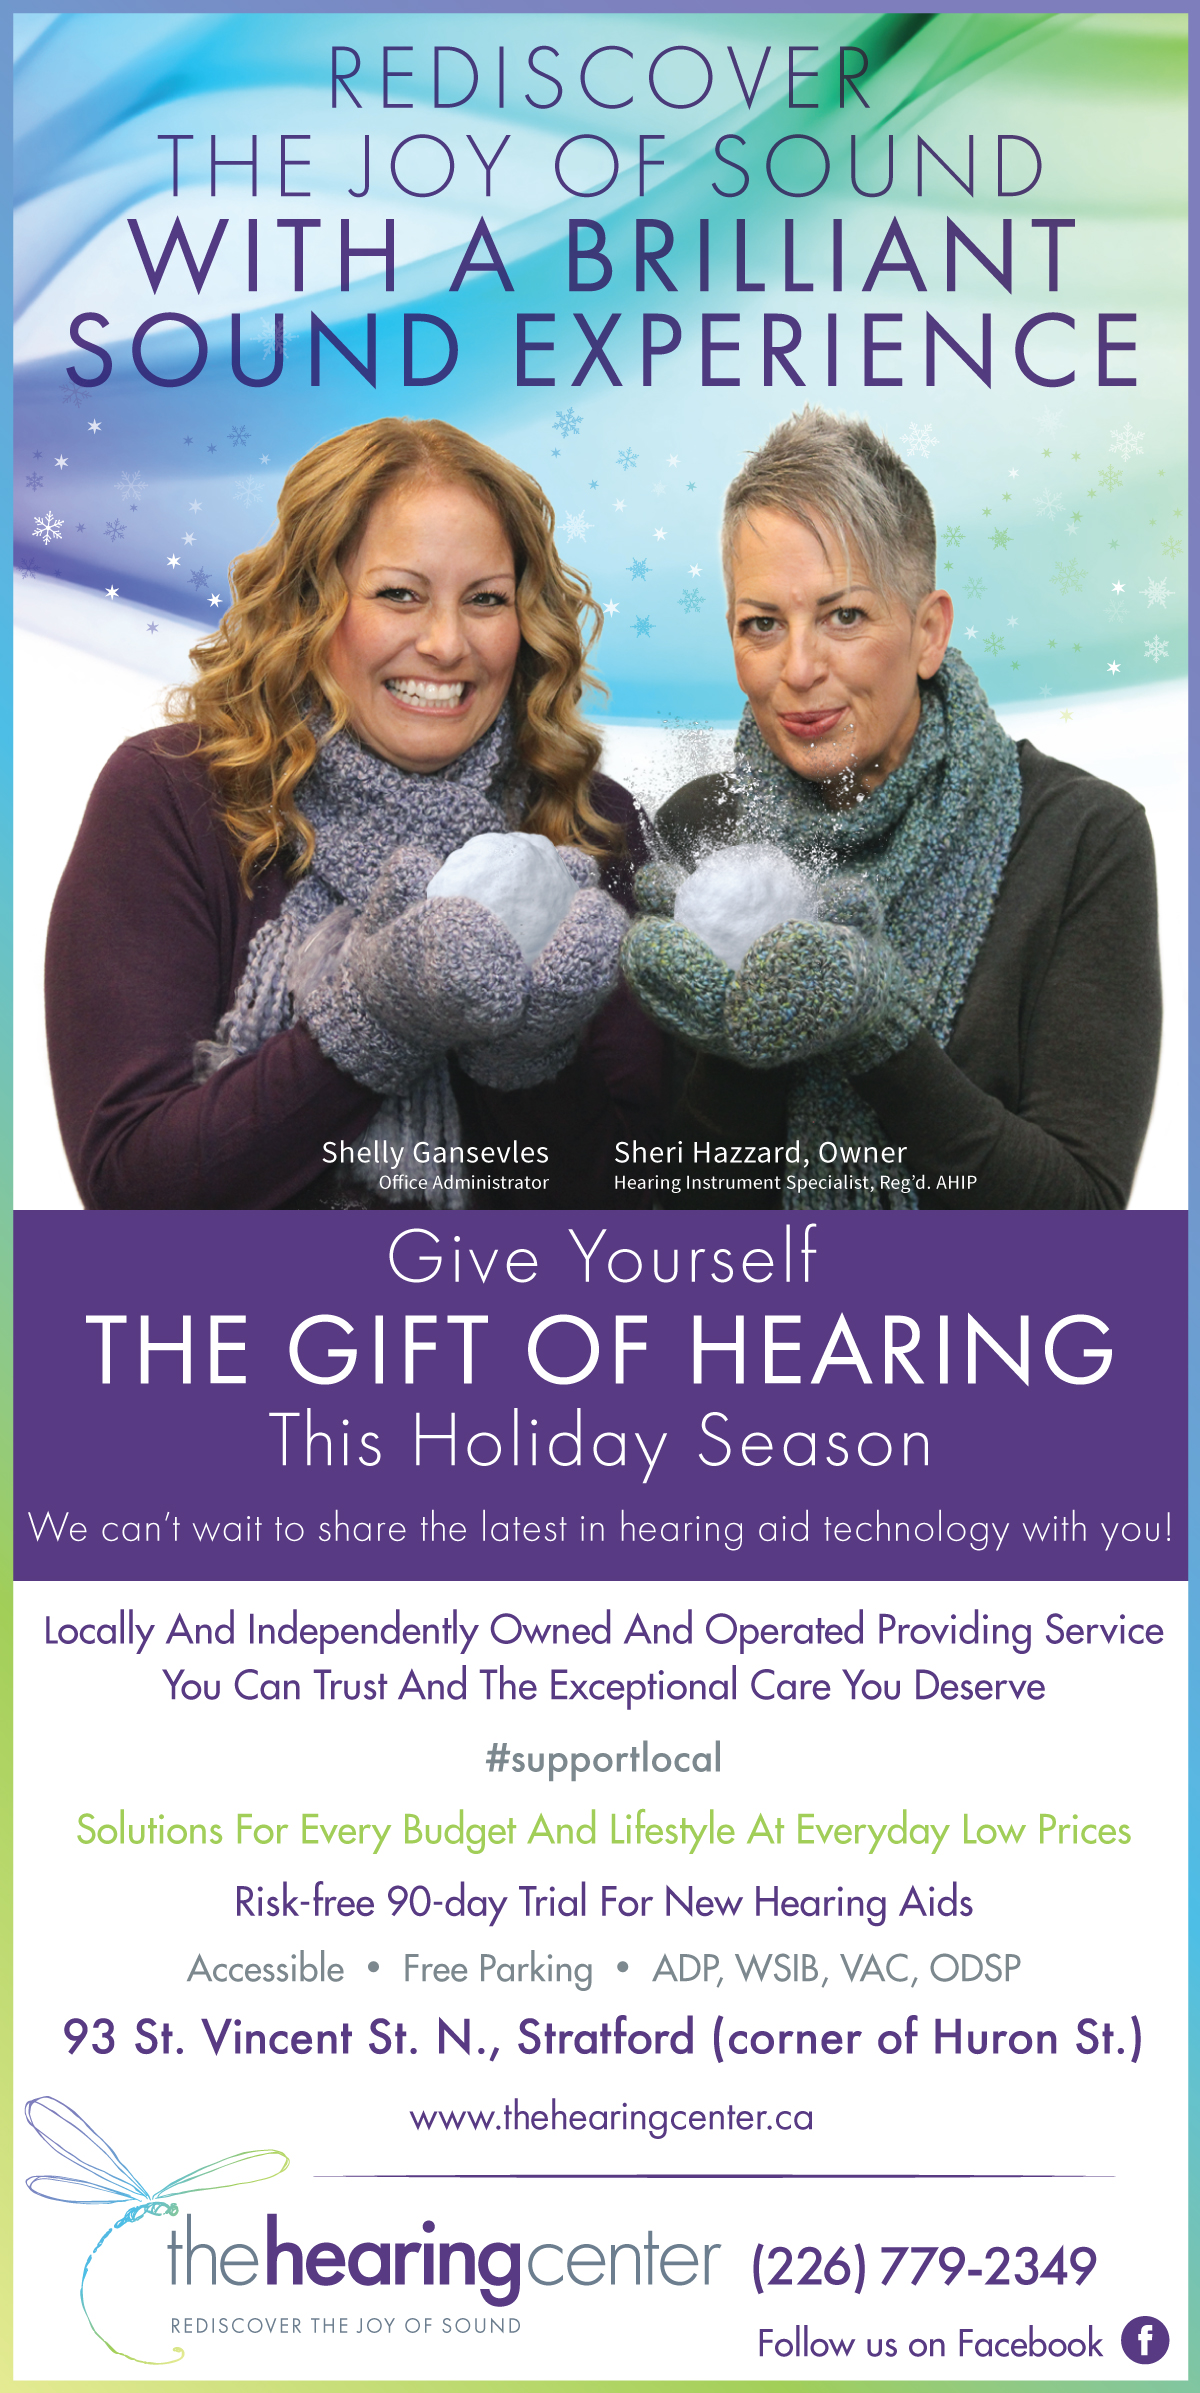 Stratford hearing clinic - the hearing center